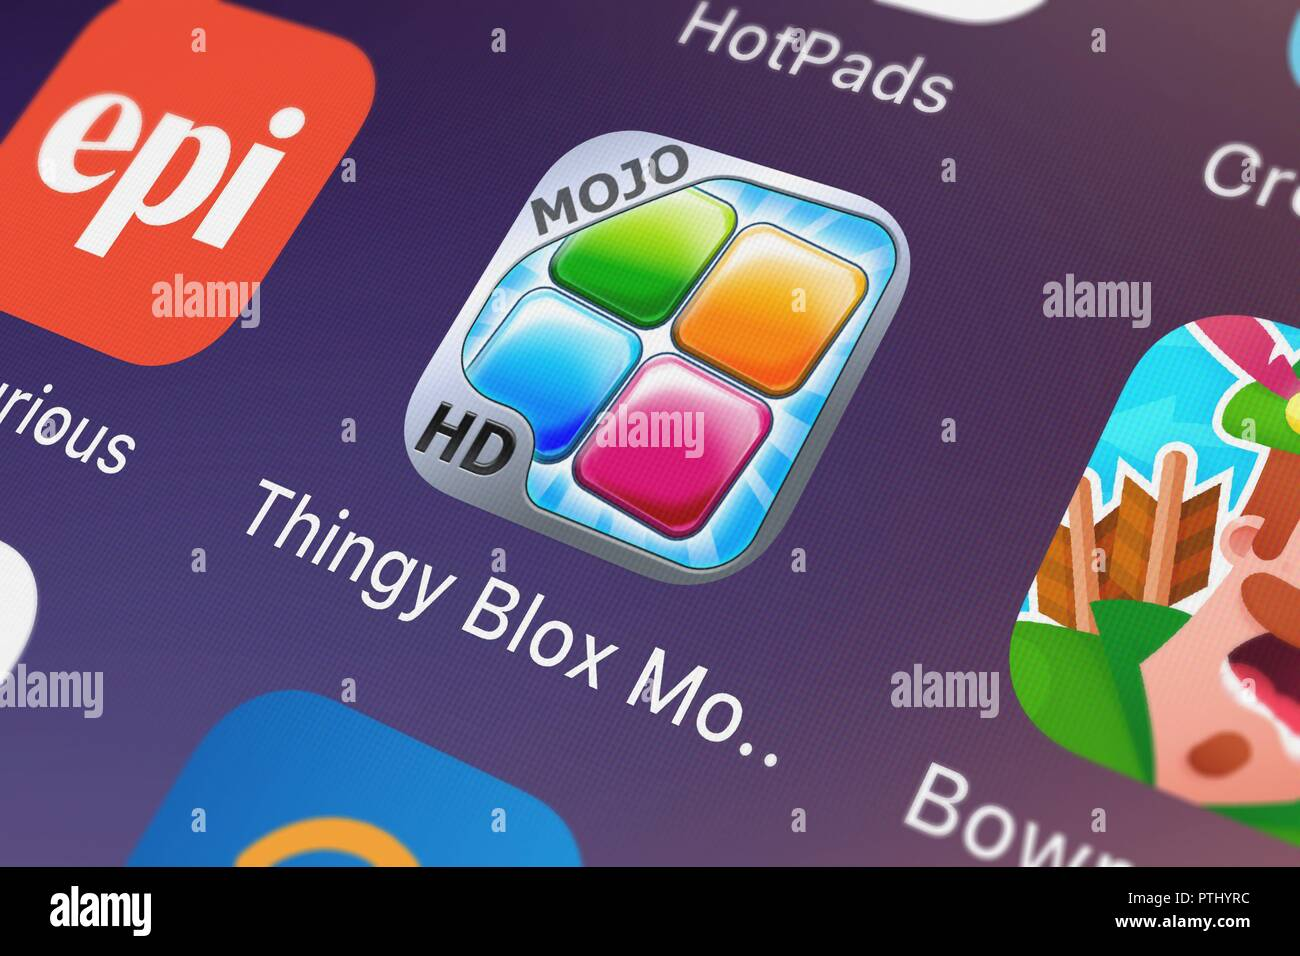 London, United Kingdom - October 09, 2018: Close-up of the Thingy Blox MoJo HD icon from FDG Mobile Games GbR on an iPhone. - Stock Image